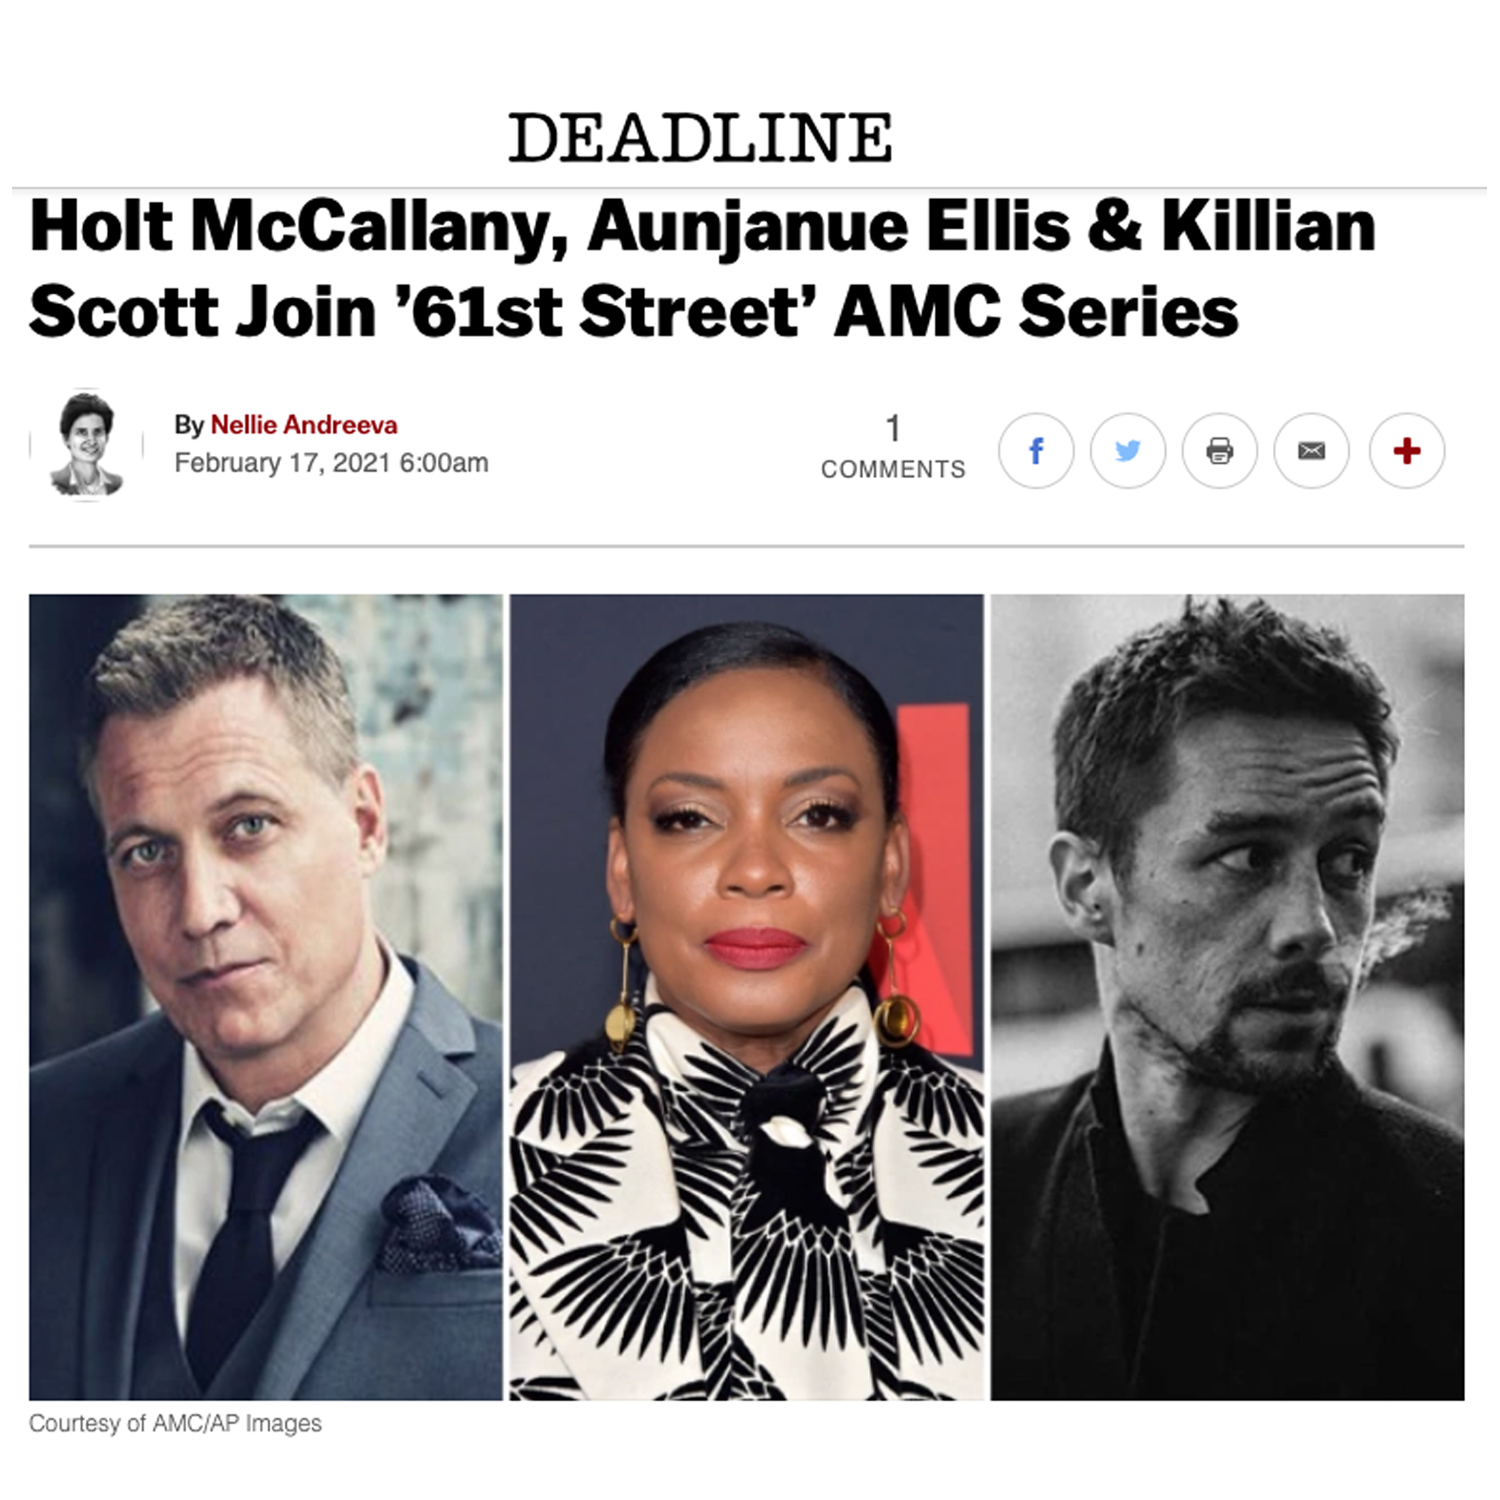 http://holtmccallany.com/wp-content/uploads/2021/02/HoltMcCallany61ststreet.jpg